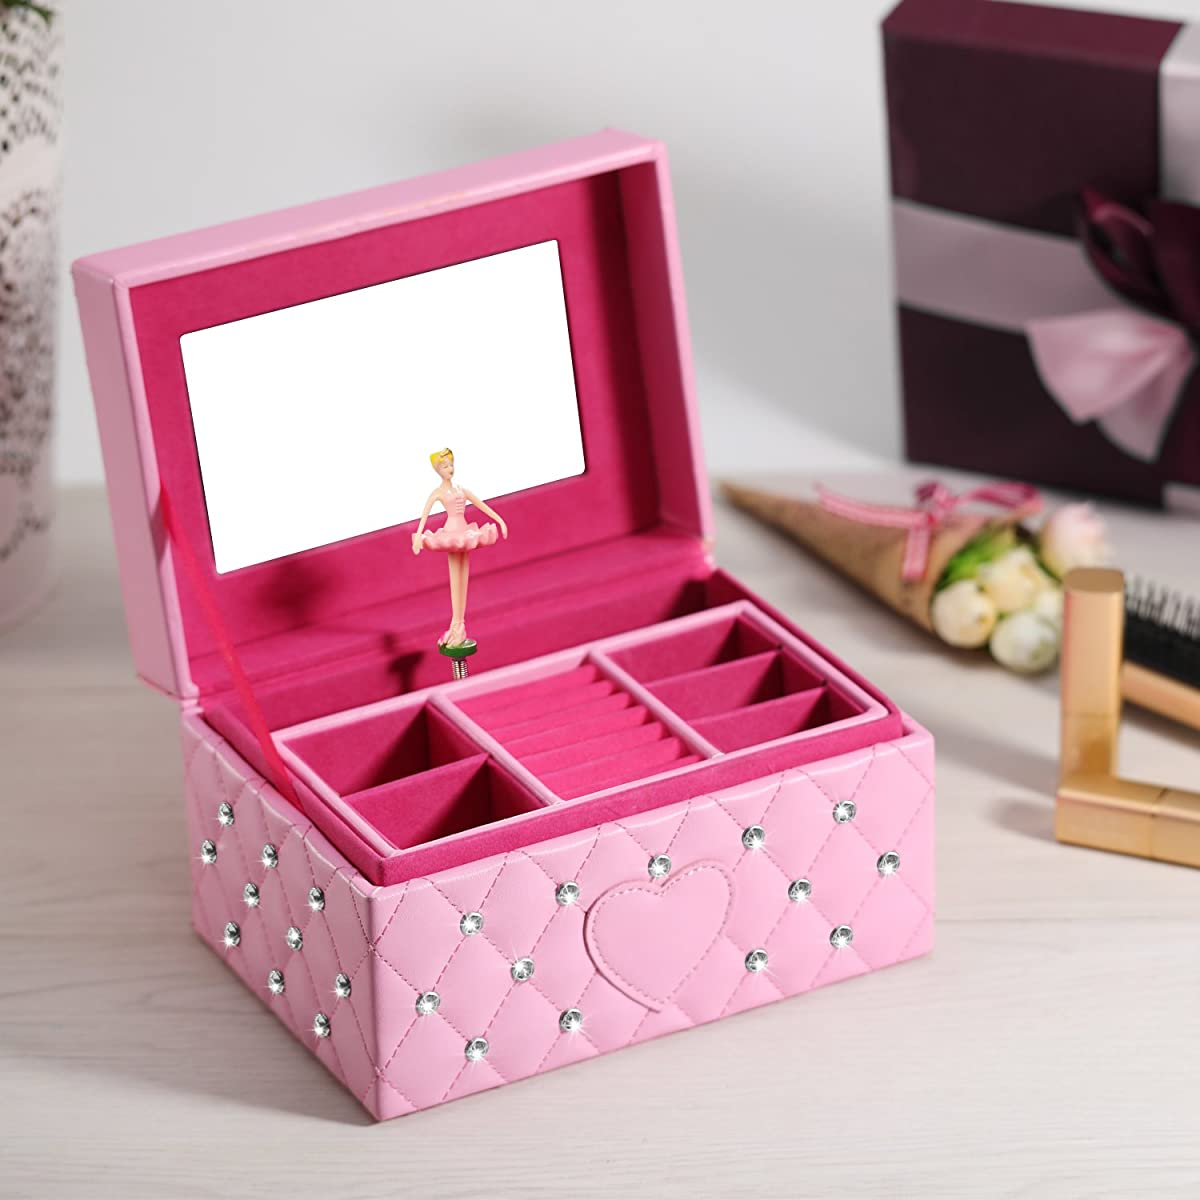 SMONET Musical Jewelry Box Ballerina Girls Jewel Storage Case Pink For Elise